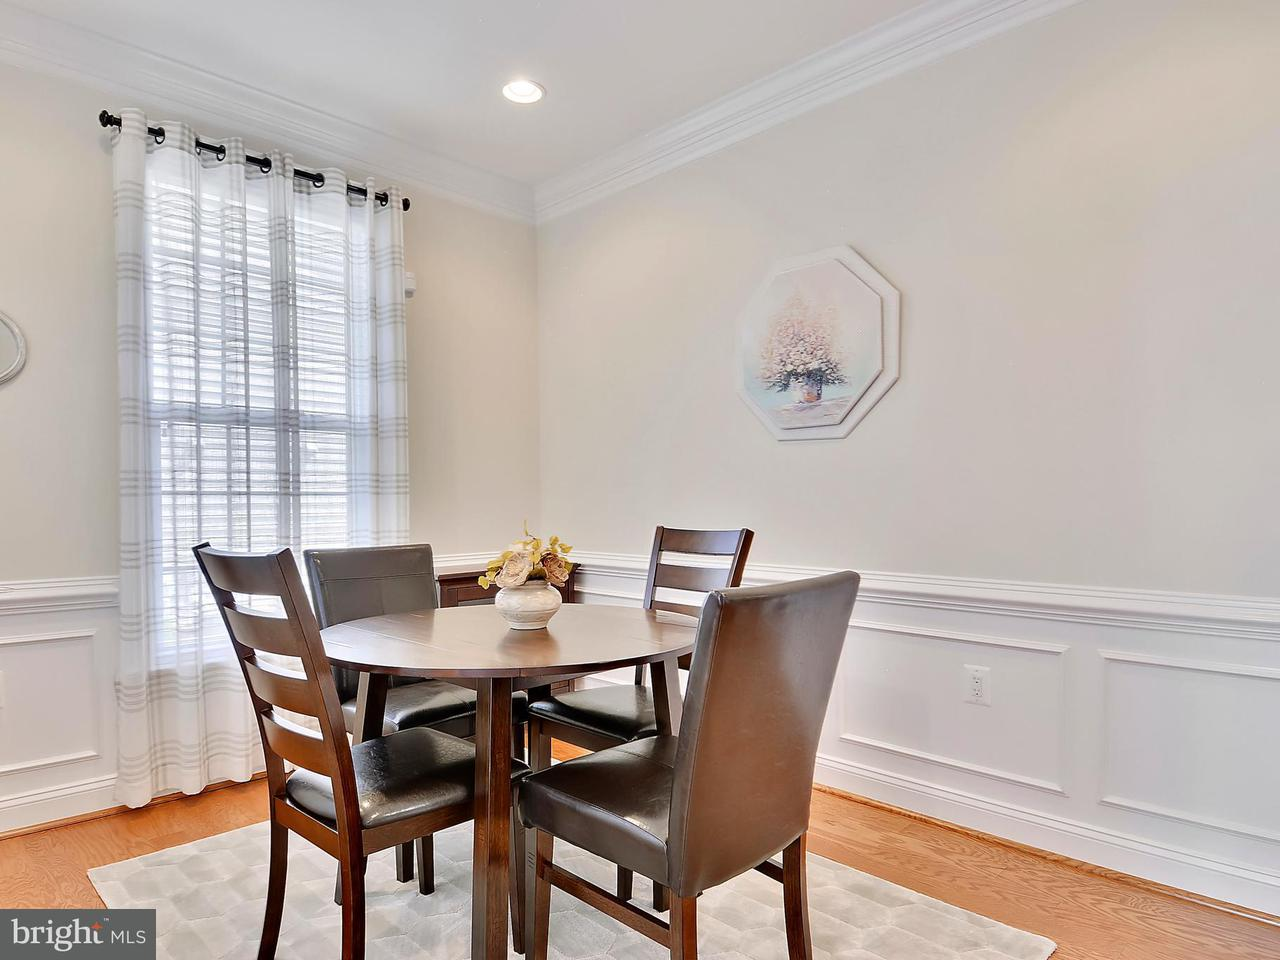 Townhouse for Sale at 20431 ISLAND WEST SQ 20431 ISLAND WEST SQ Ashburn, Virginia 20147 United States